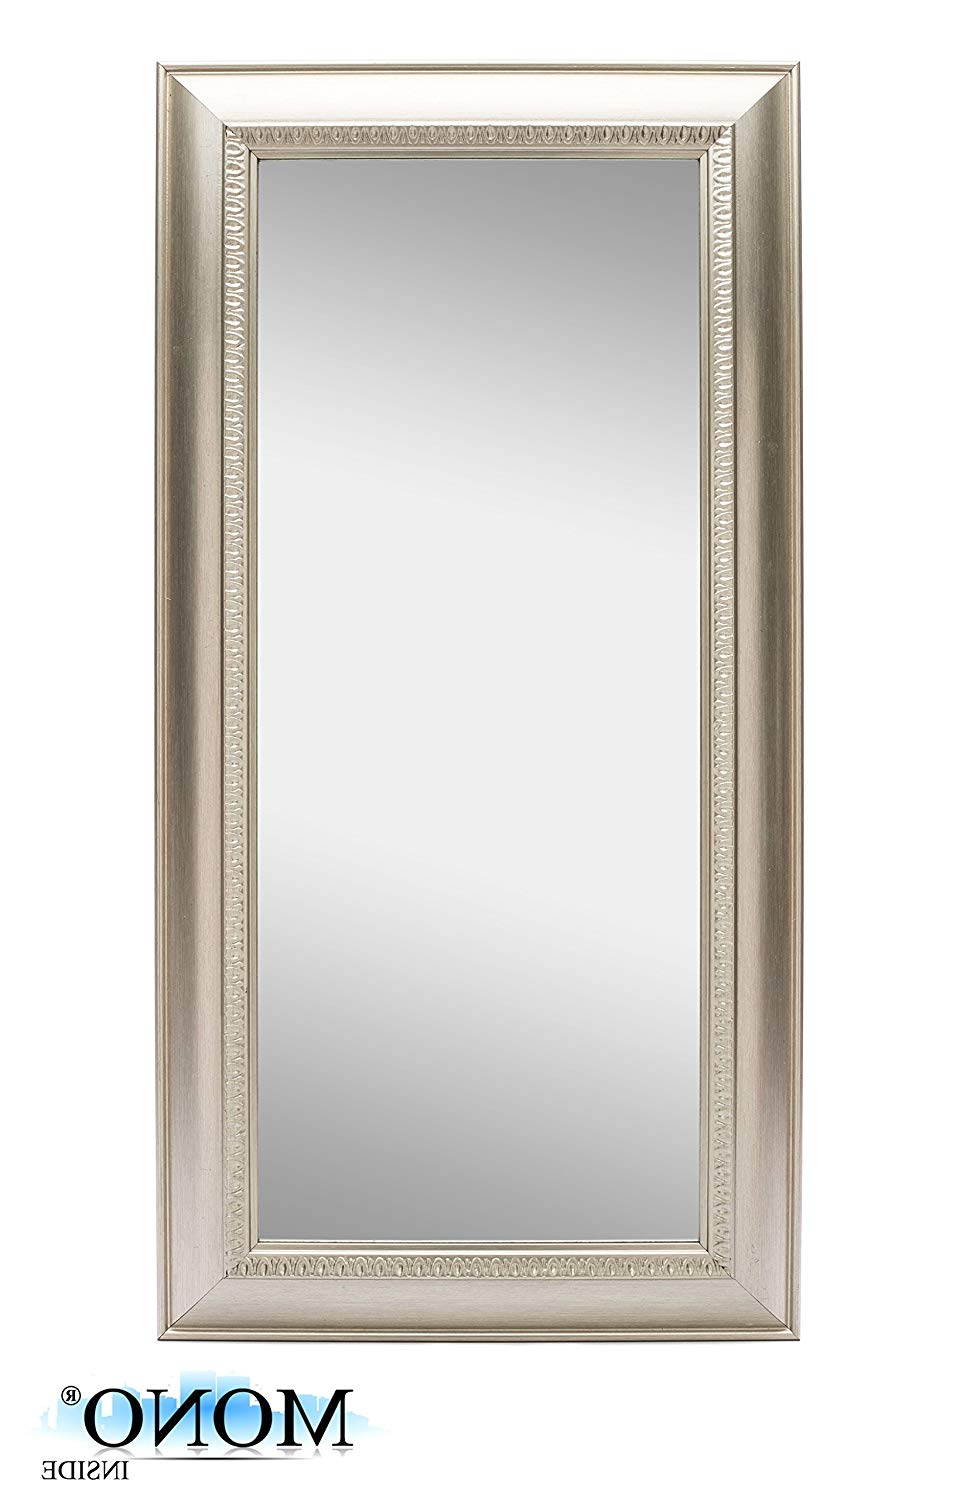 Mission Style Wall Mirrors Pertaining To Famous Cheap Mission Style Wall Mirror, Find Mission Style Wall (Gallery 4 of 20)